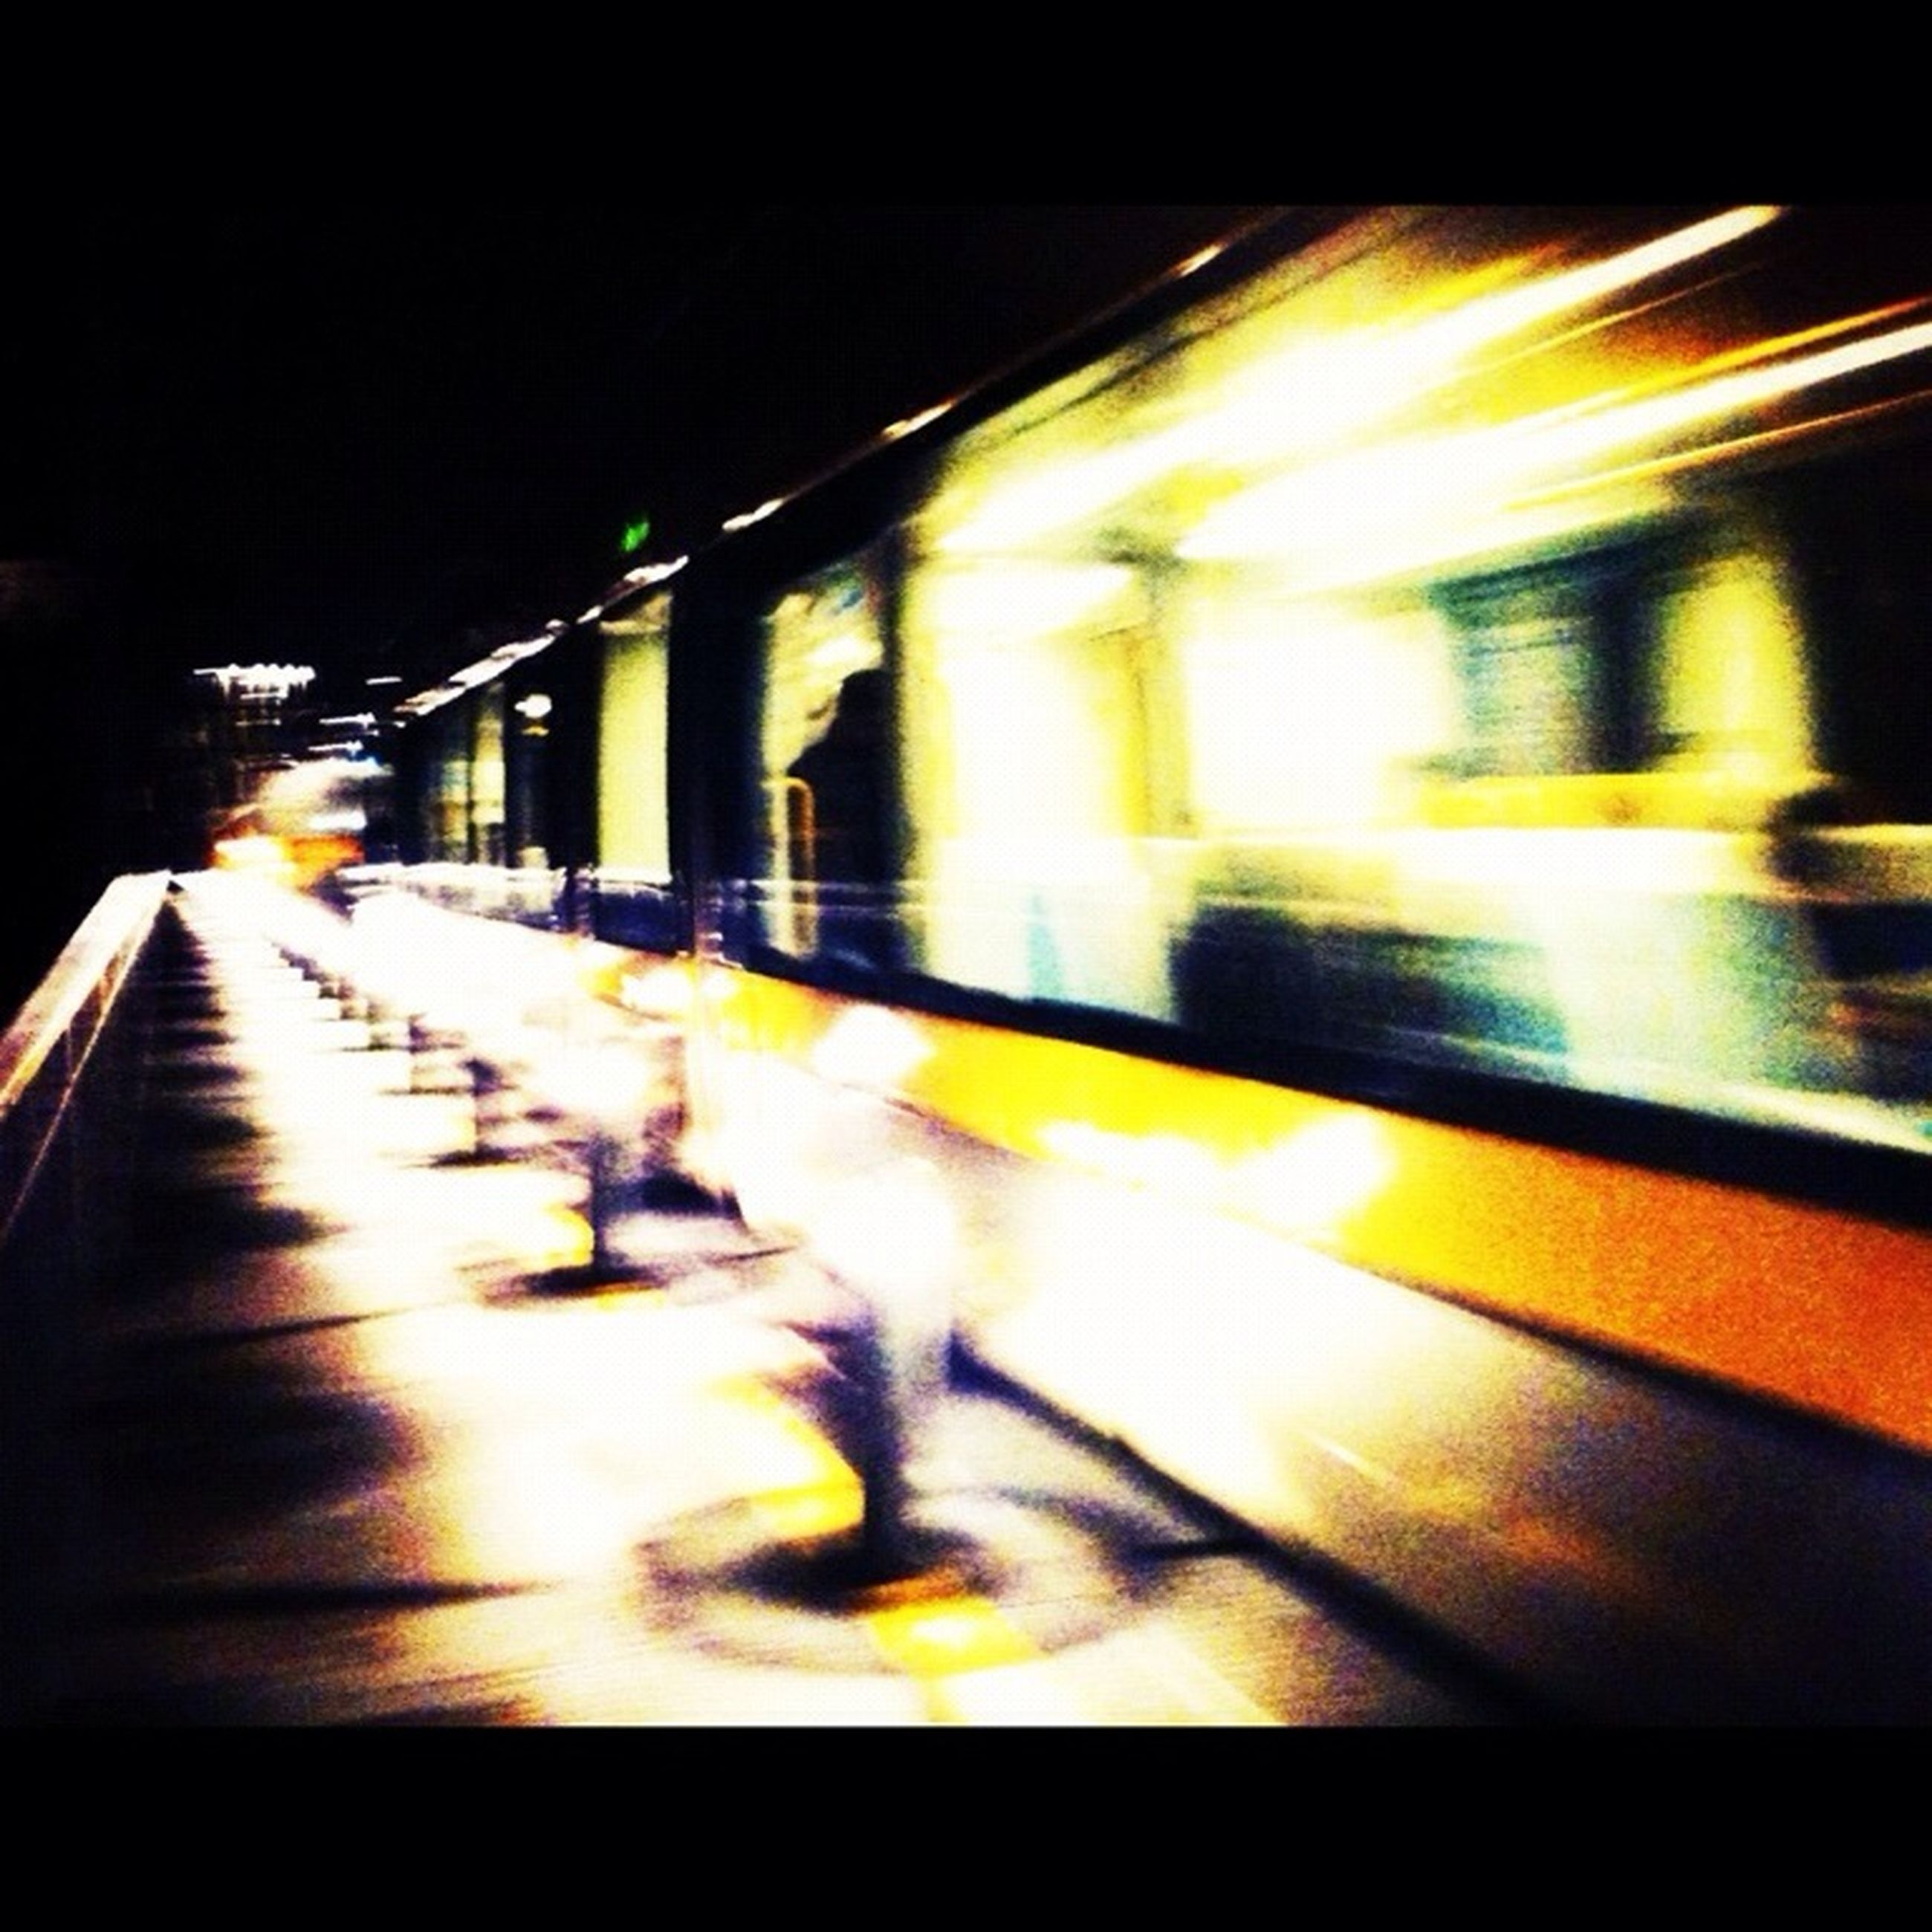 transportation, illuminated, railroad station platform, night, blurred motion, railroad station, public transportation, speed, railroad track, rail transportation, motion, mode of transport, on the move, train - vehicle, travel, subway station, train, long exposure, the way forward, passenger train